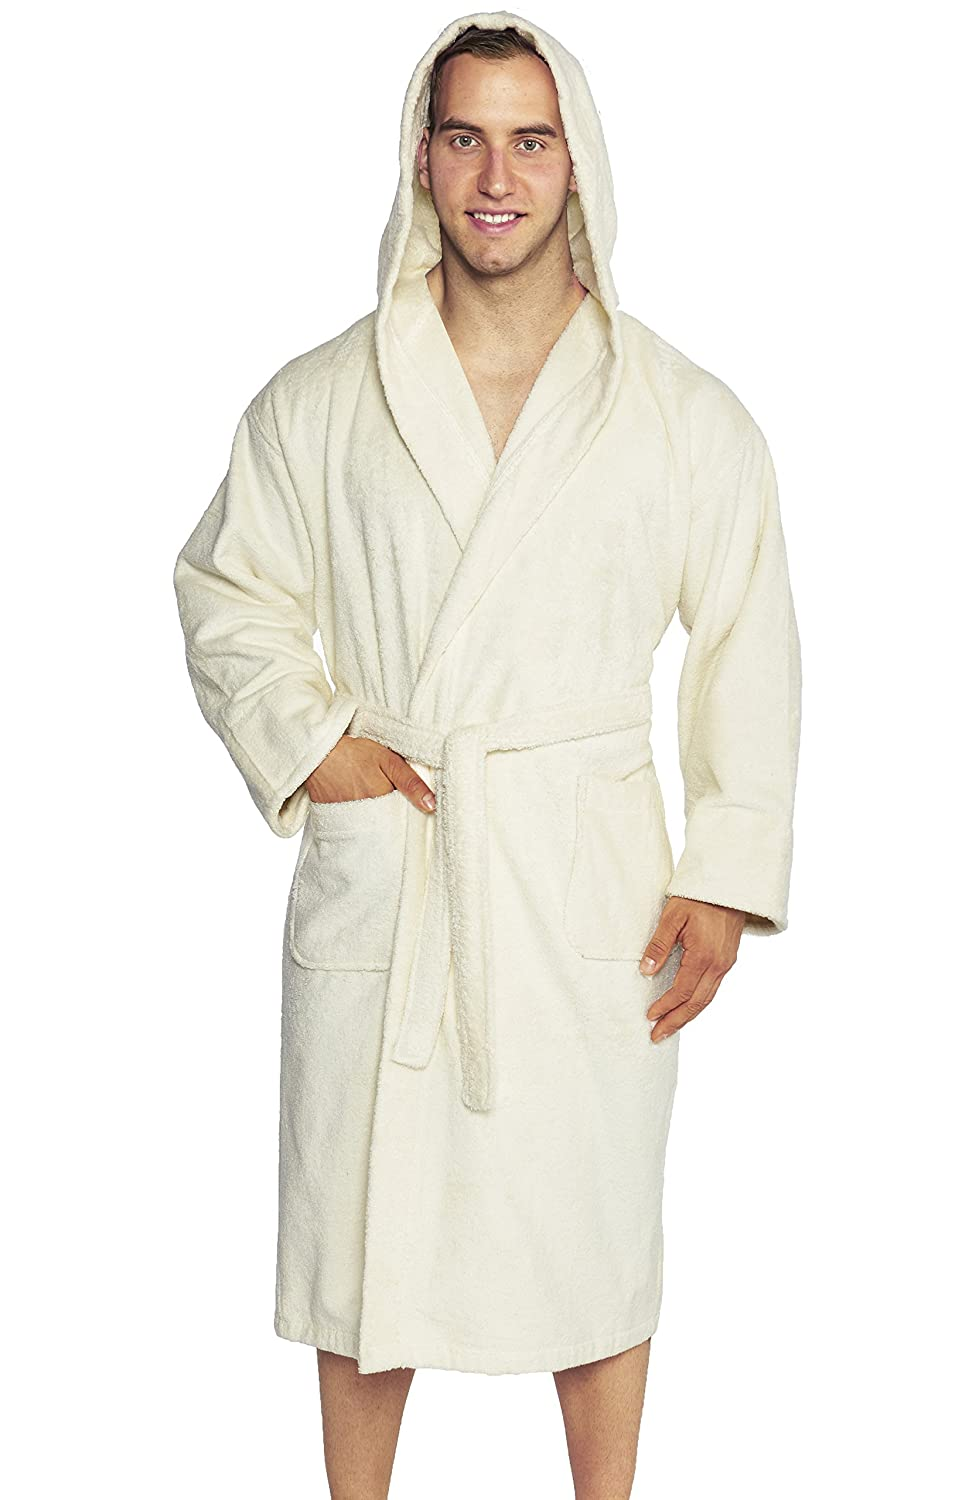 100/% Combed Pure Turkish Cotton Made in Turkey /… Charcoal One Size Fits Most Hooded Terry Bathrobe Unisex